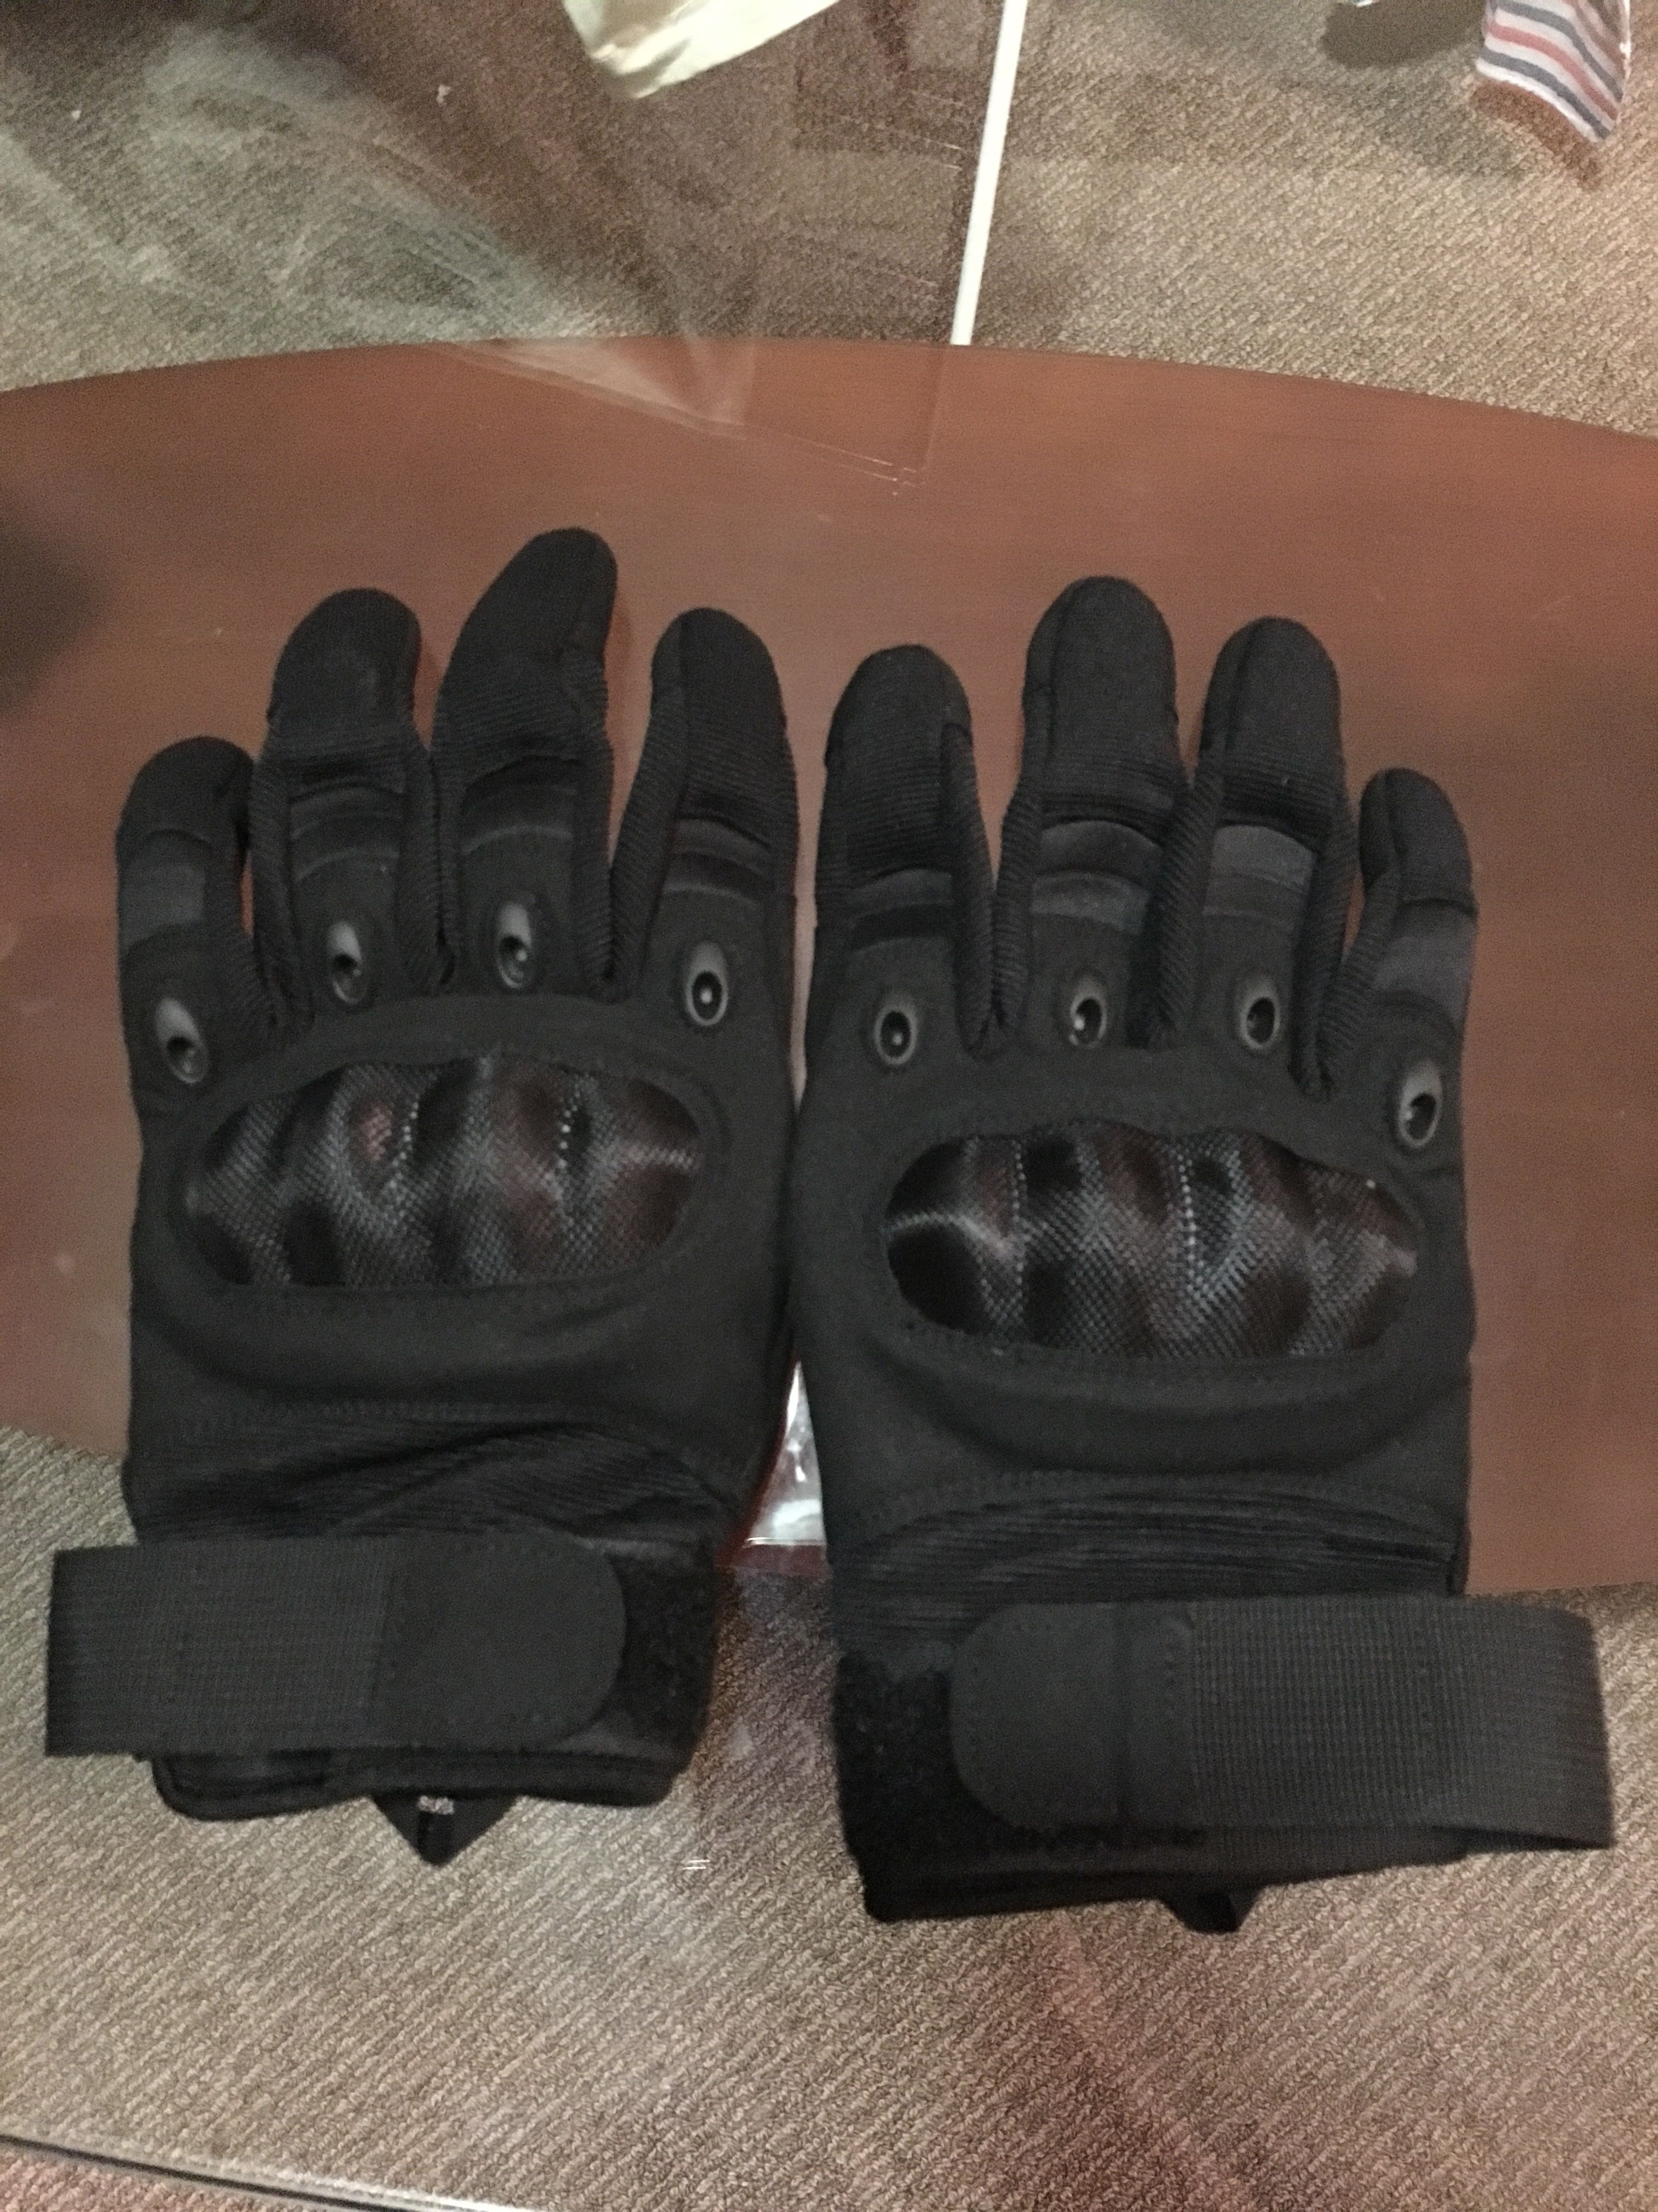 Summer motorcycle gloves touch screen enabled